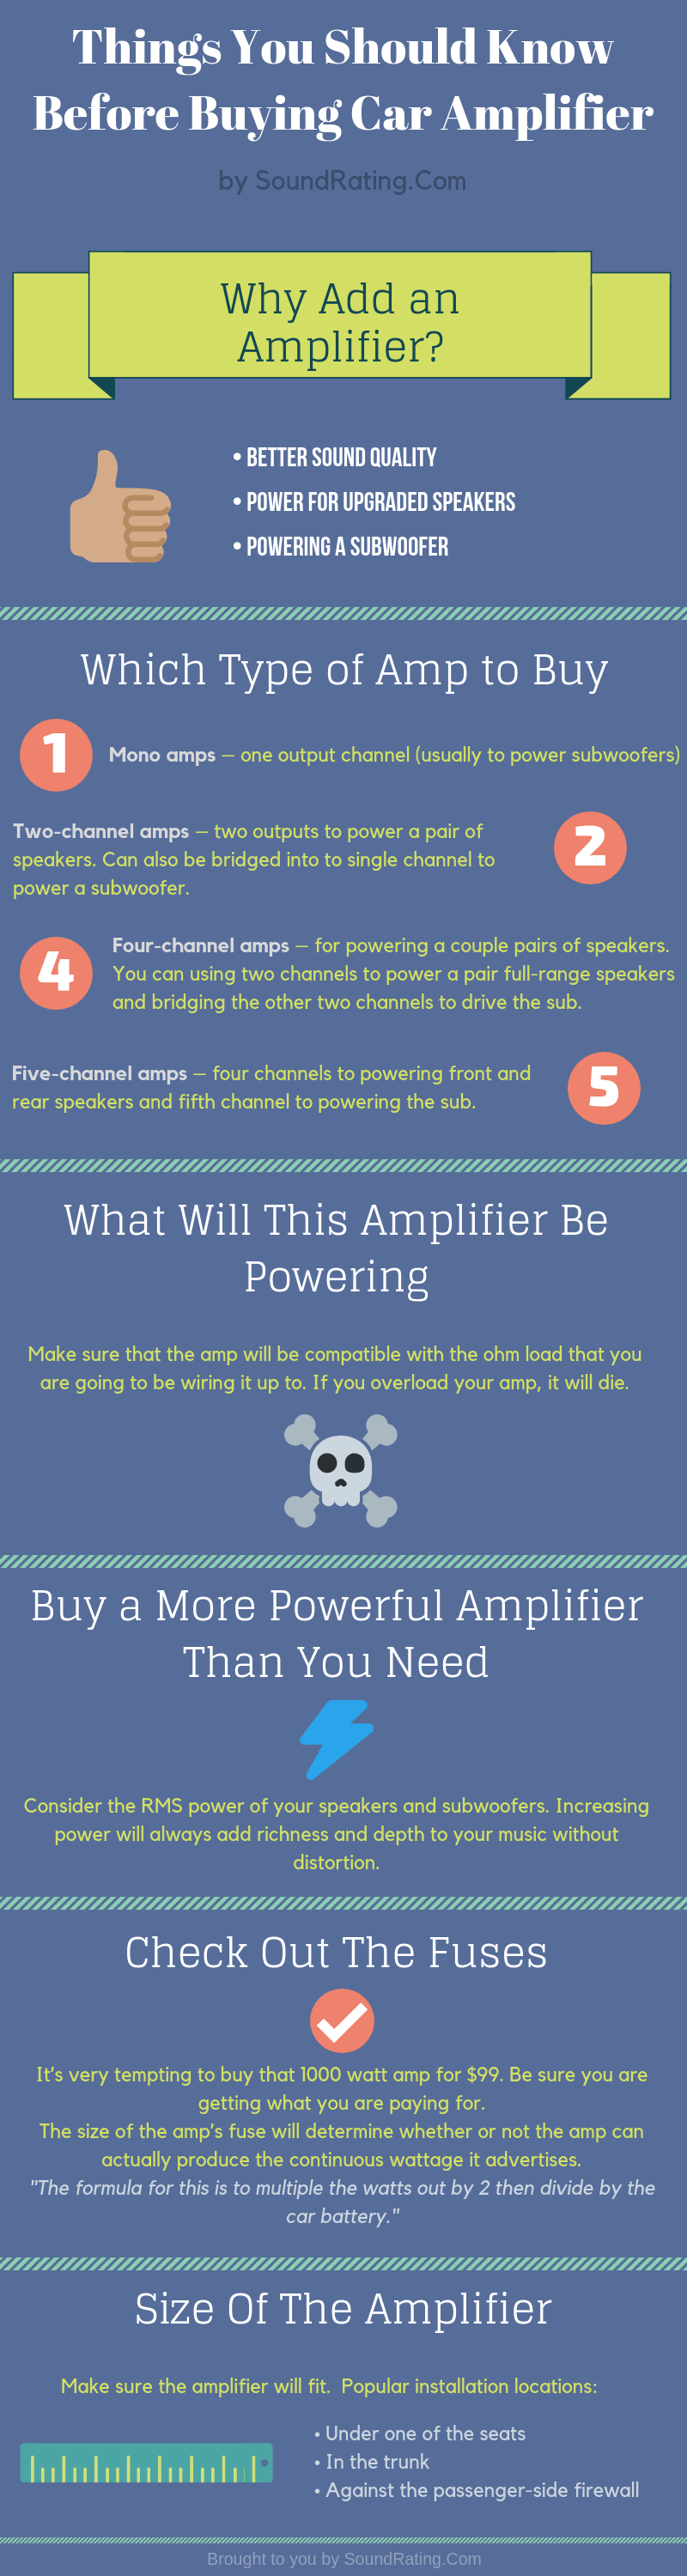 Amplifier Buyers Guide Infographic